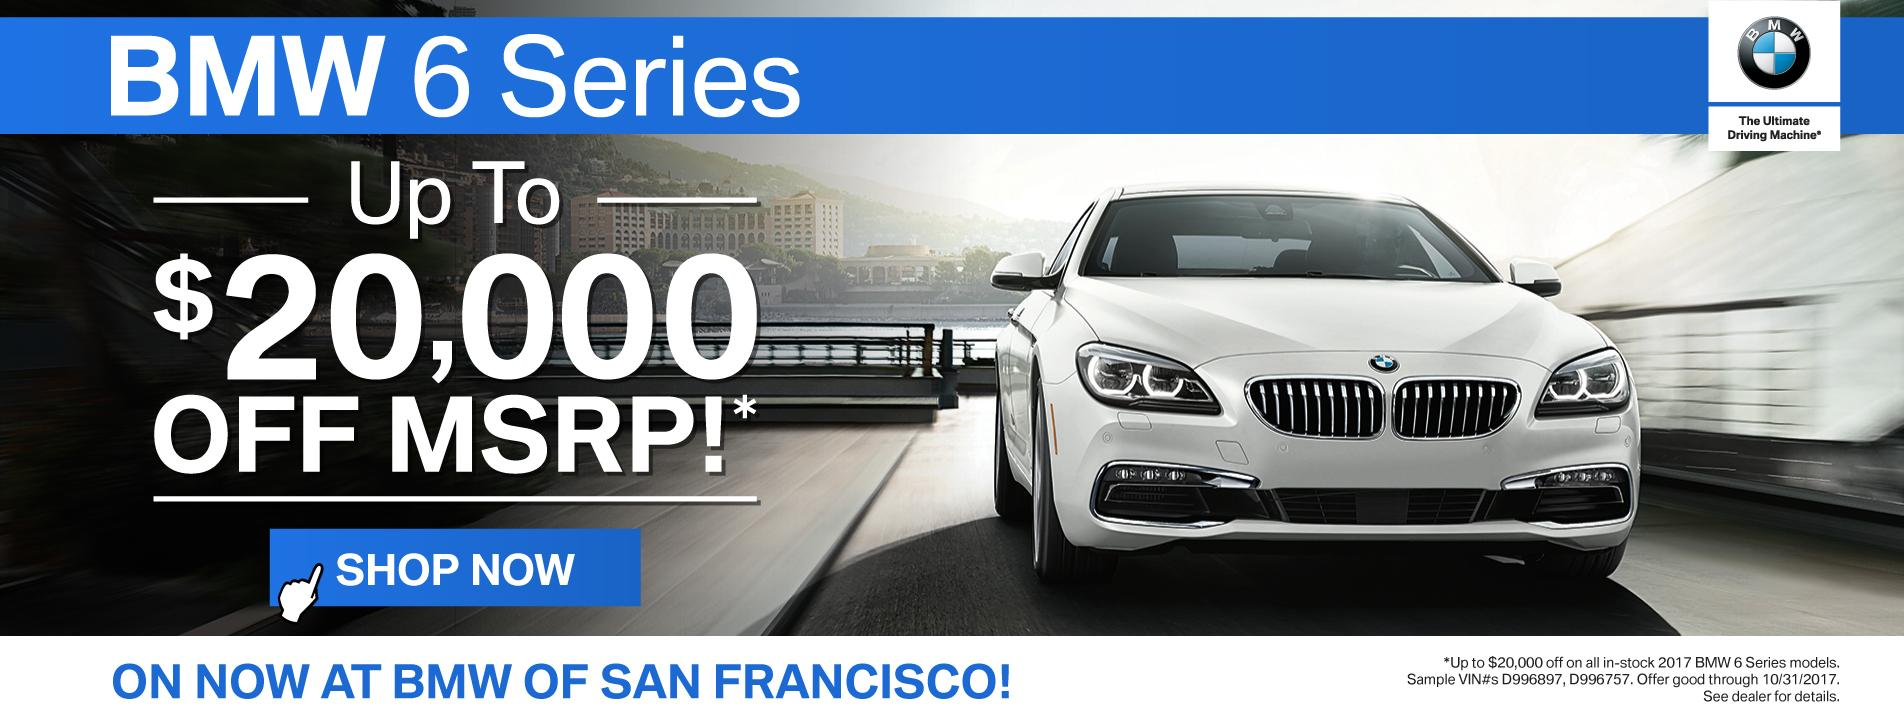 BMW 6 Series Offer